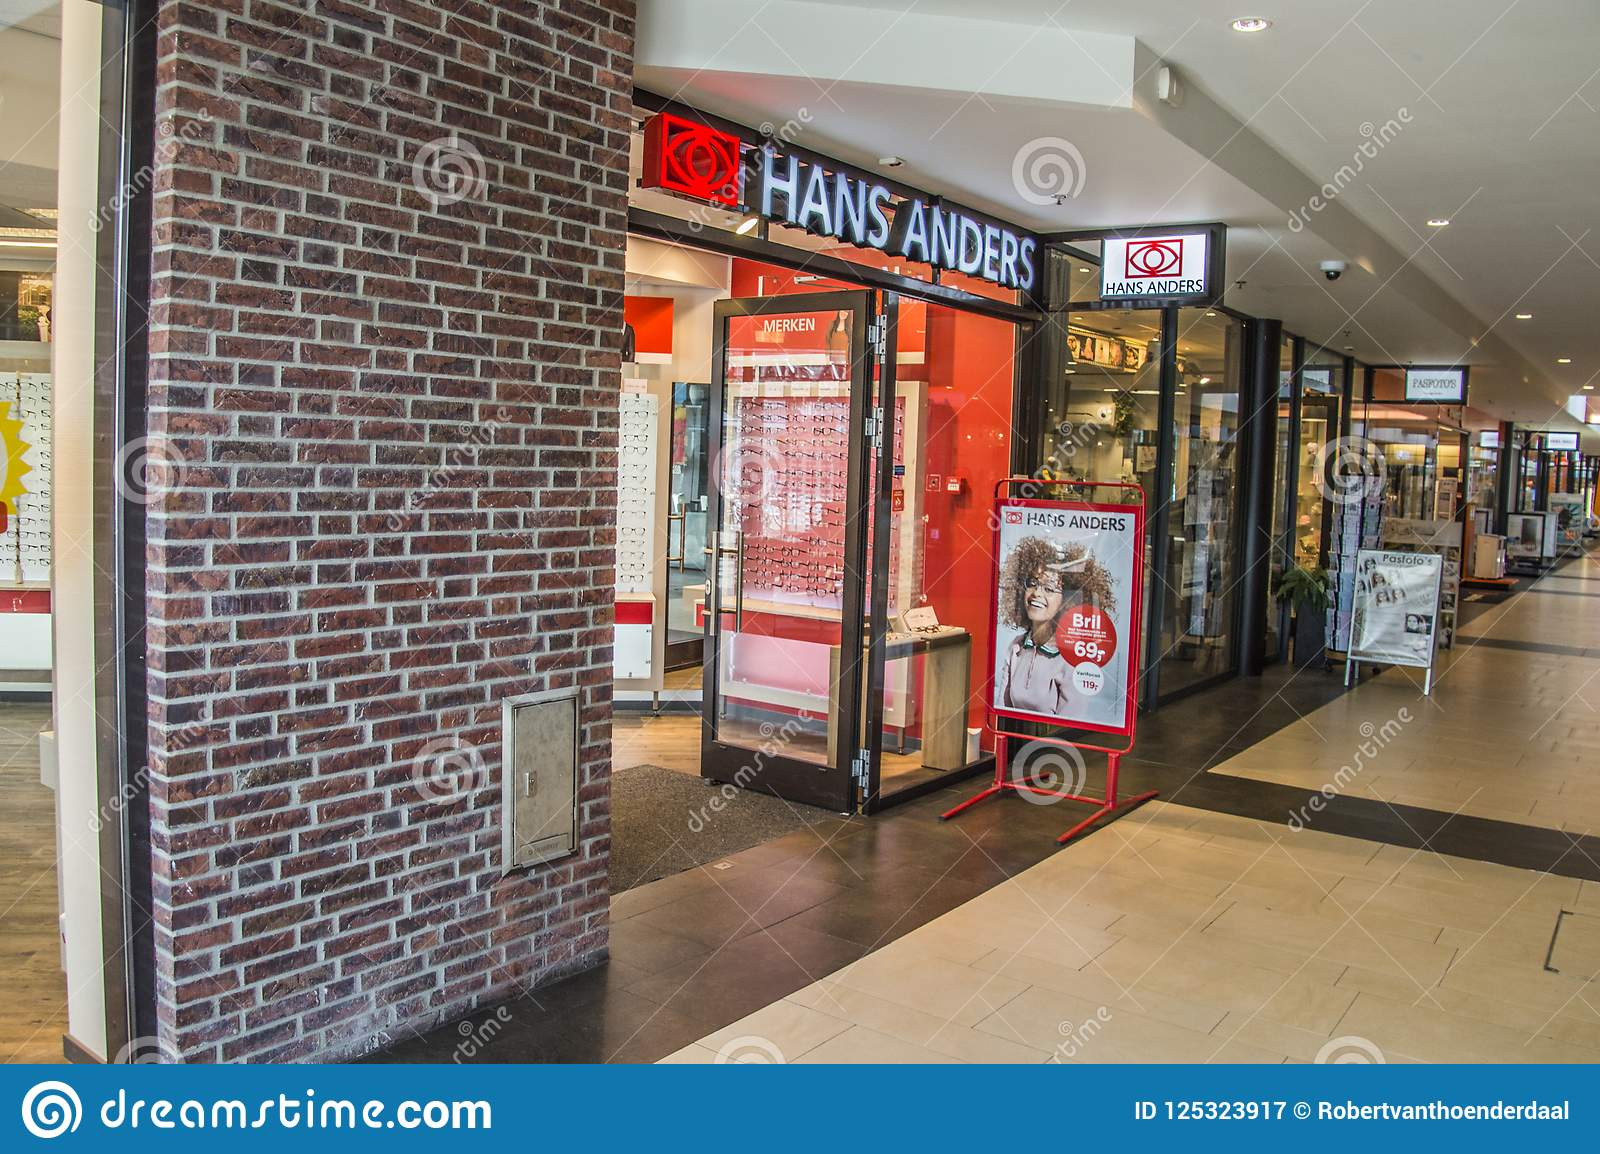 bdfb21113fa3cf Hans Anders Opticians Shop At Diemen The Netherlands 2018 Editorial ...